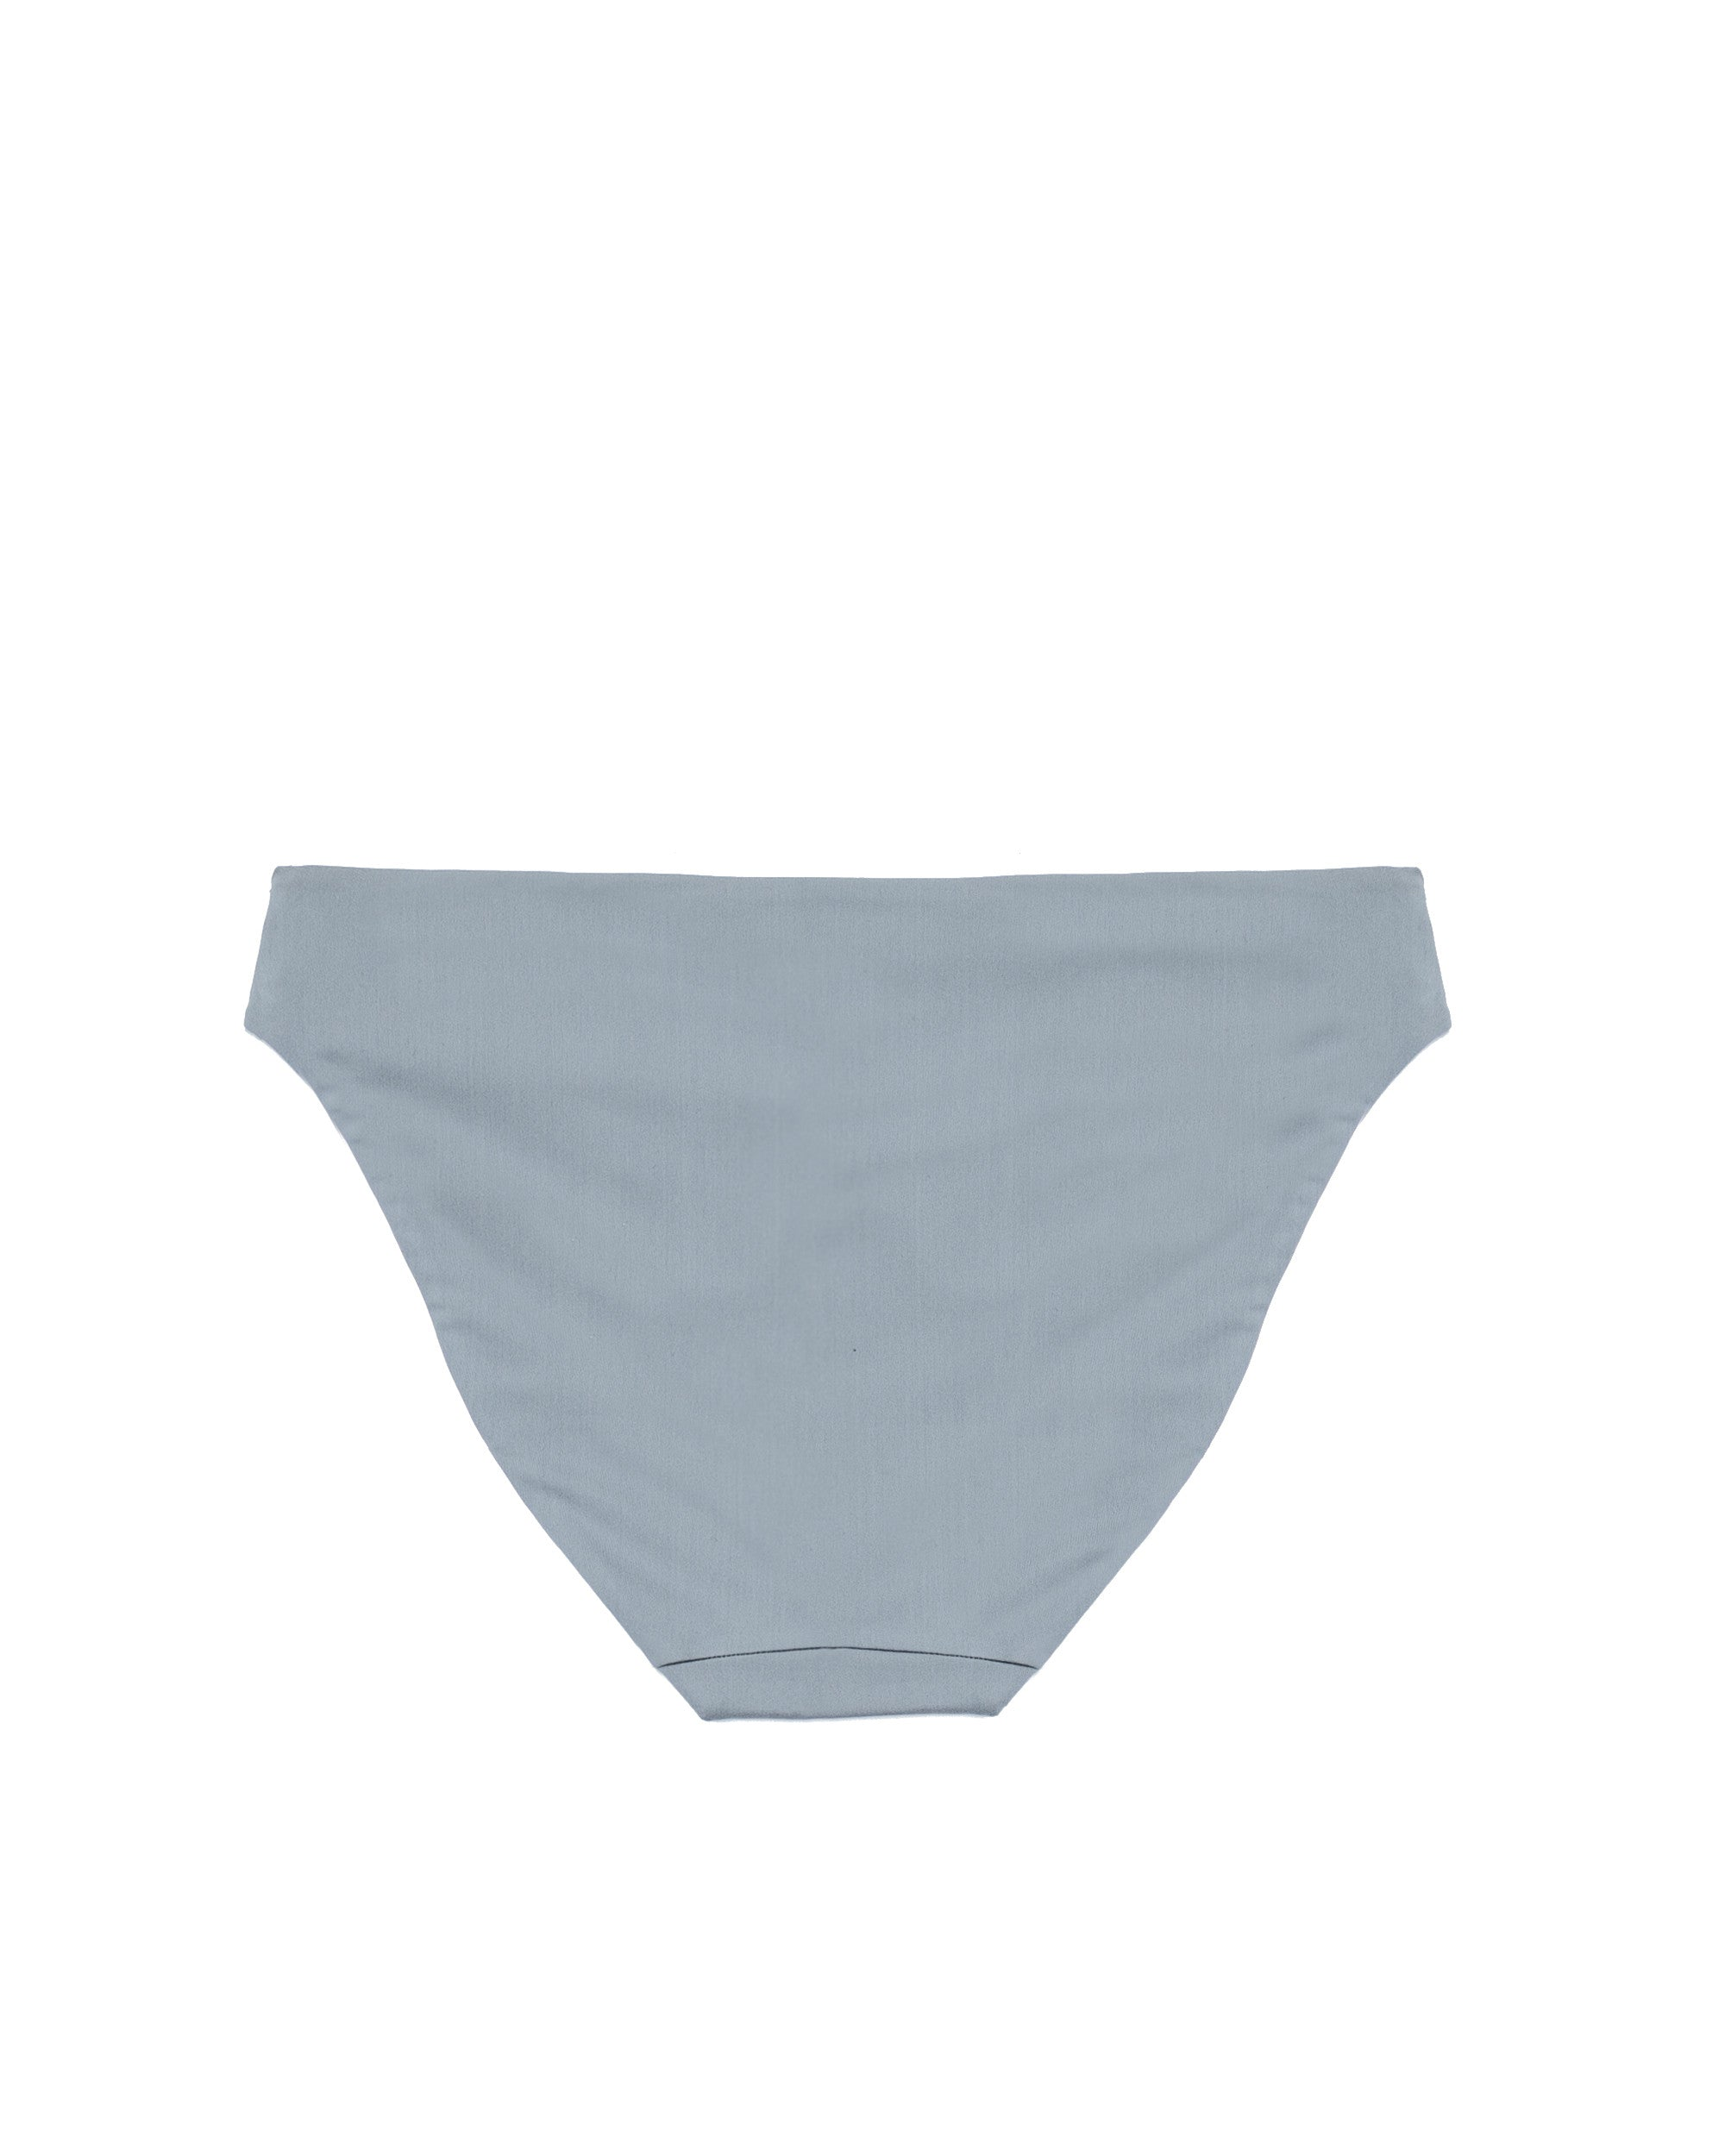 esby-apparel-swimwear-designed-in-austin-made-in-usa-claudia-bikini-bottom-mineral-grey